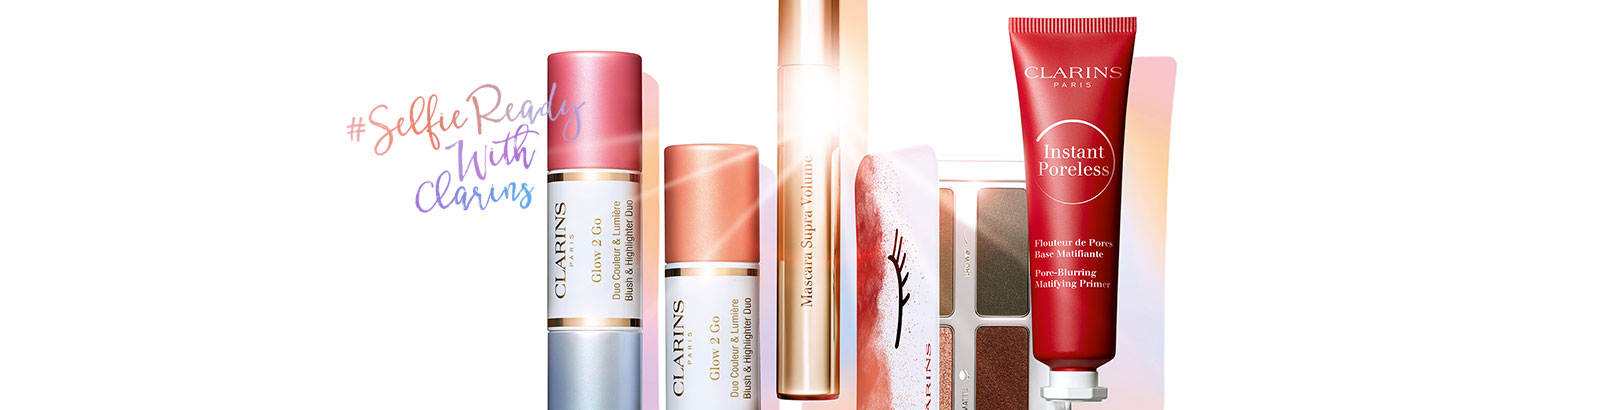 Ready for your best selfies? Clarins got you covered, thanks to the new Spring Make-Up Collection.